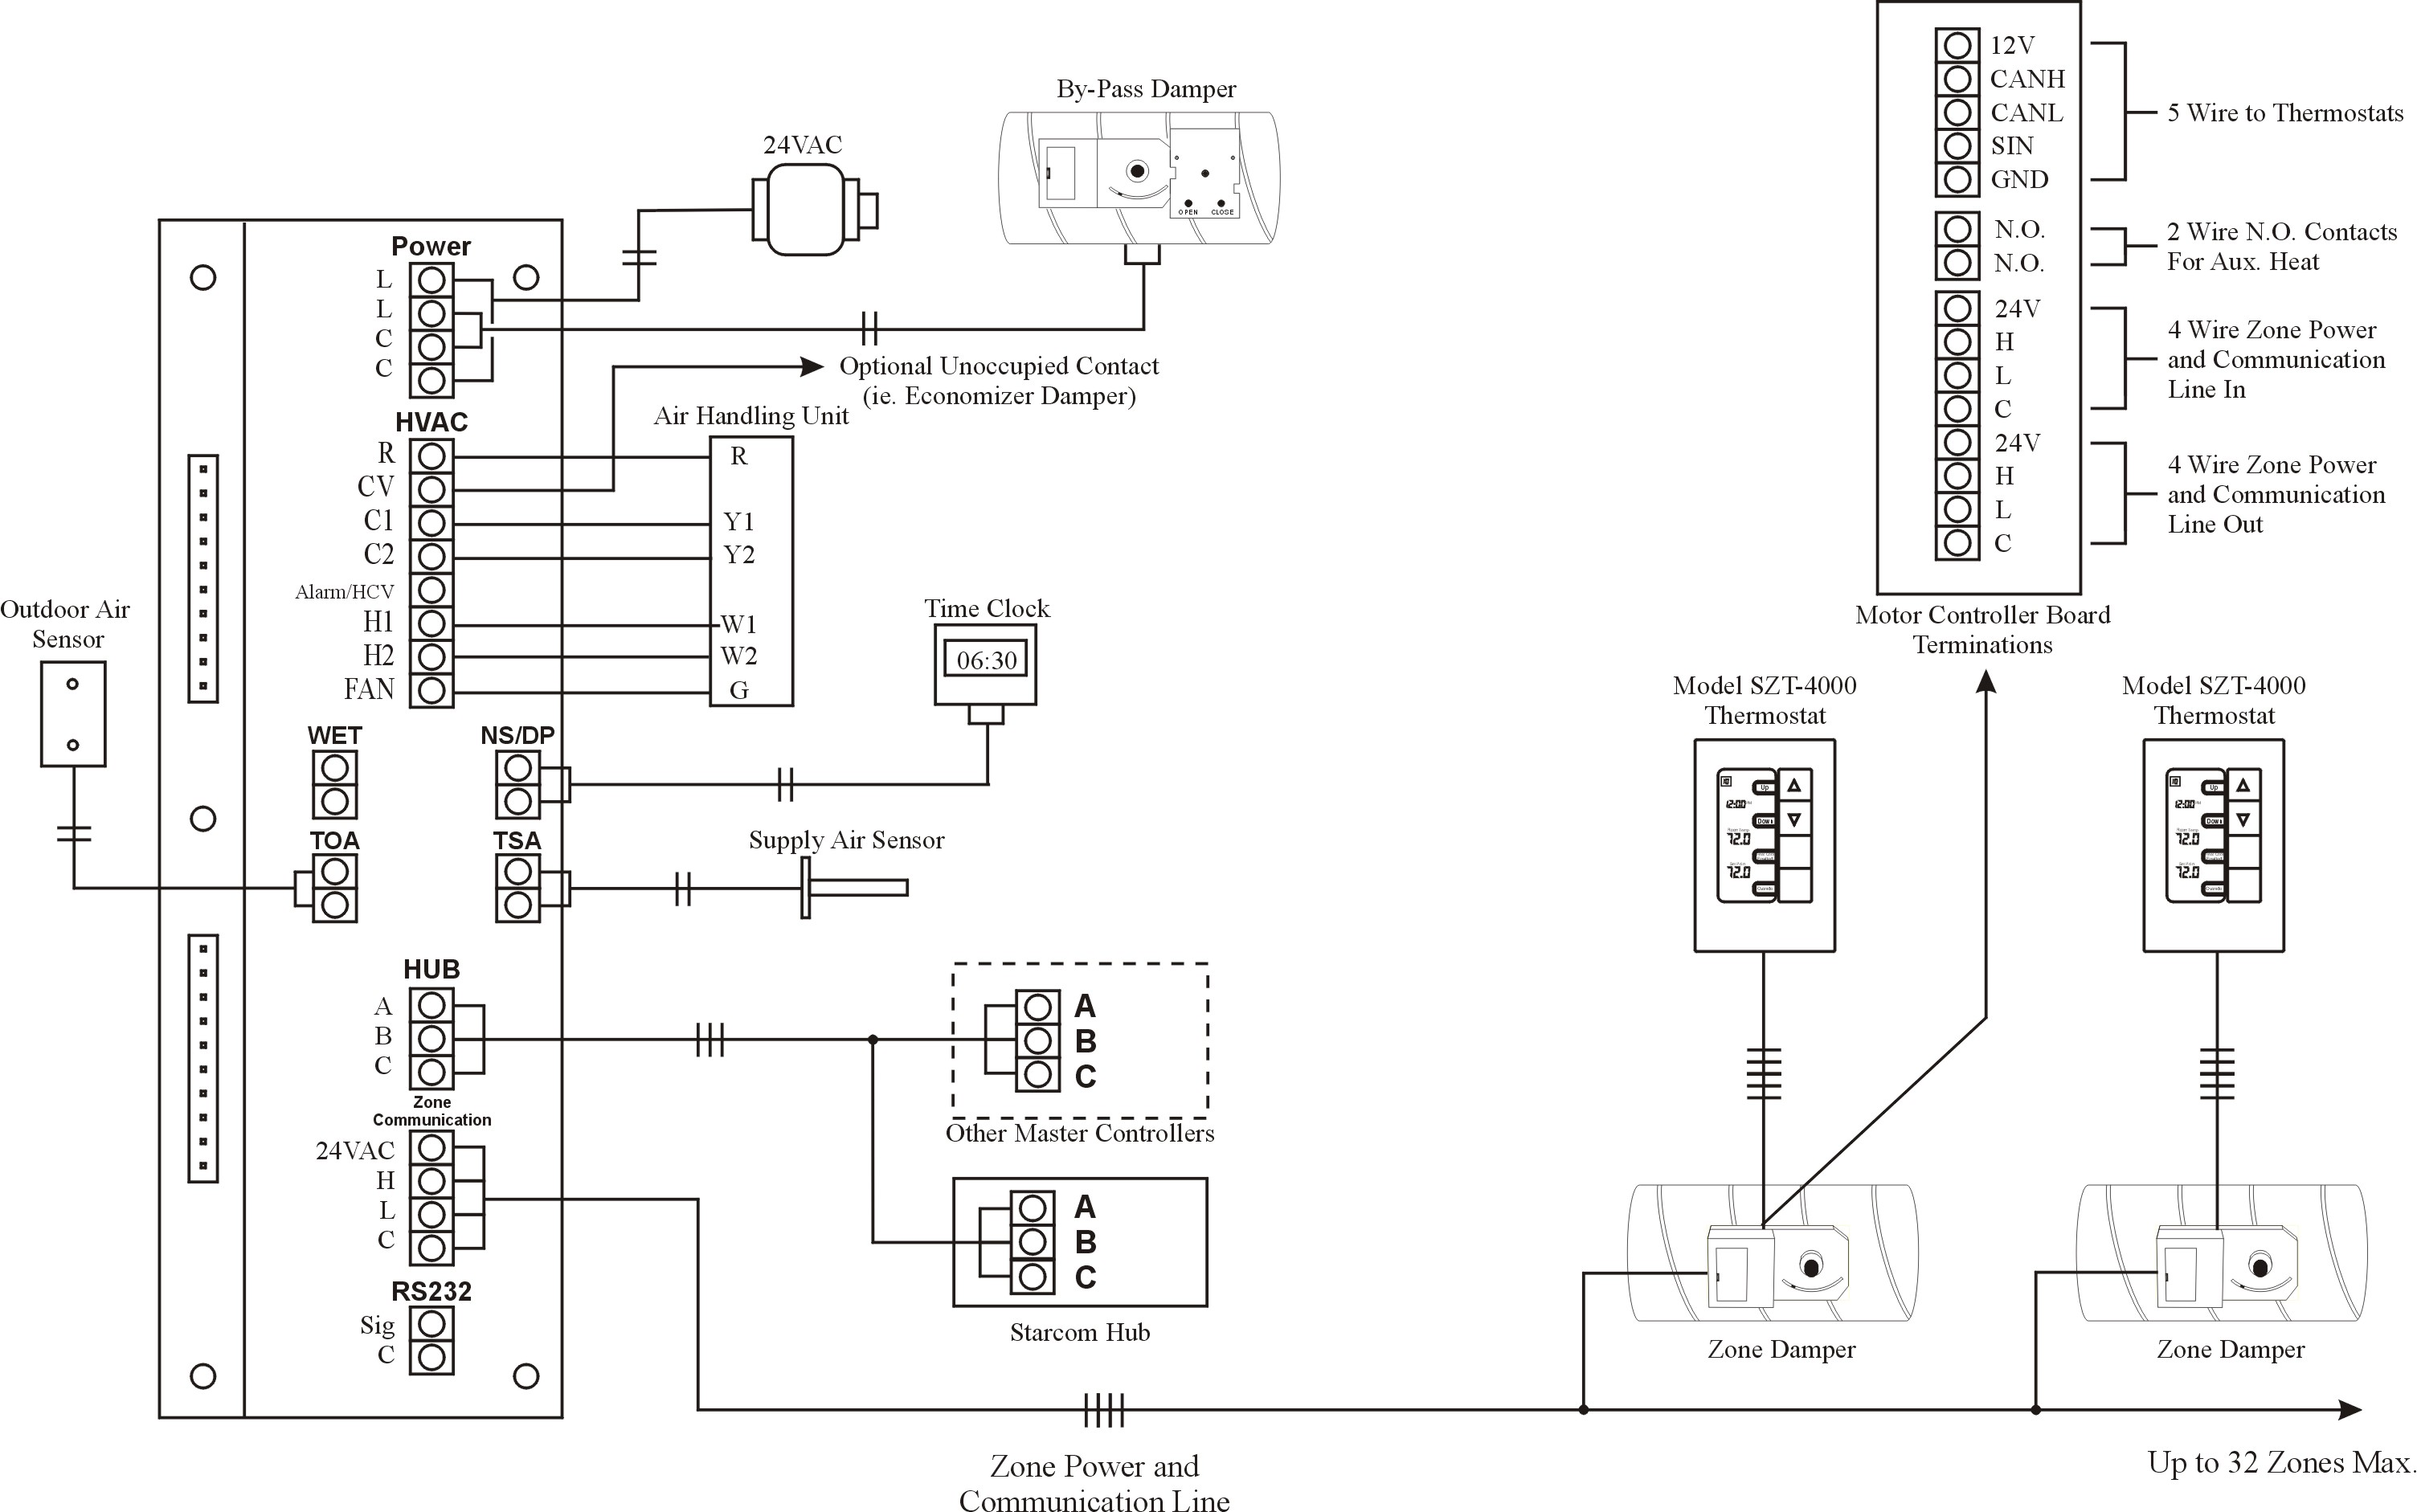 Smoke Detector Wiring Diagram For Hvac on wiring diagram for duct smoke detector